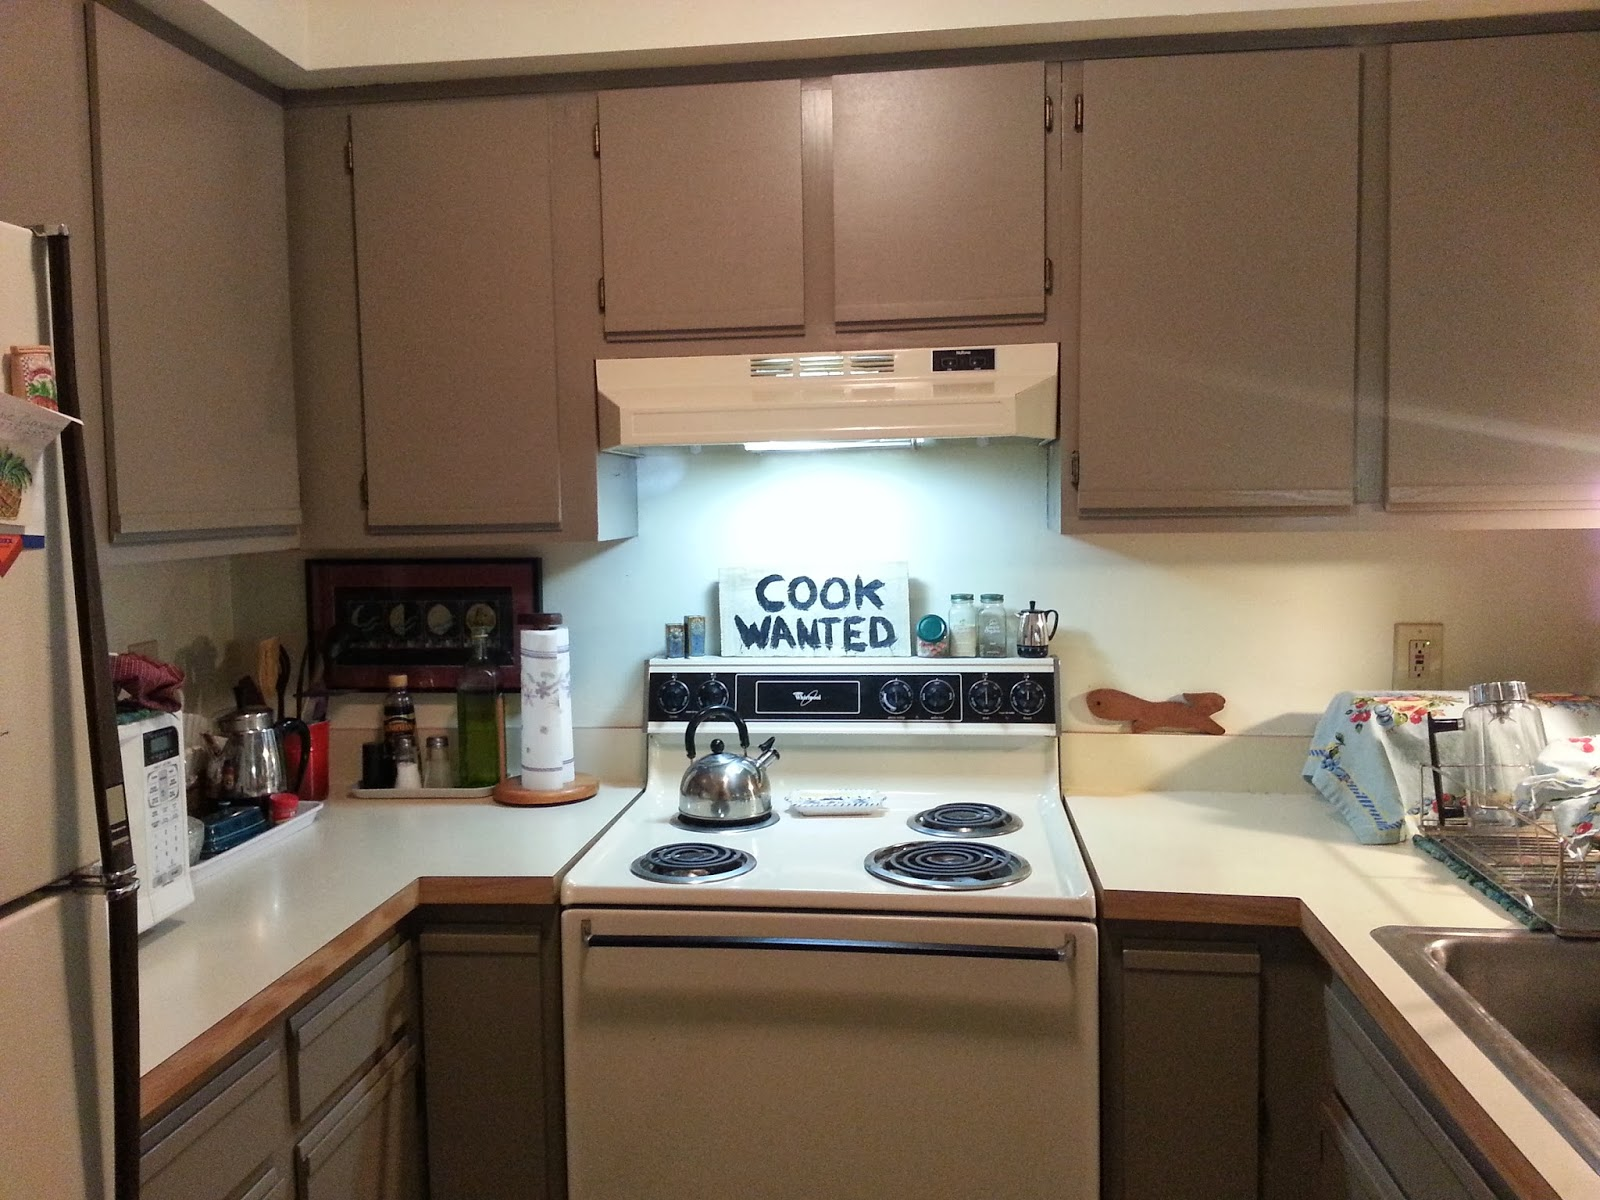 Laminate Kitchen Cabinets With Oak Trim Foobella Design Painting Laminate Kitchen Cabinets Done